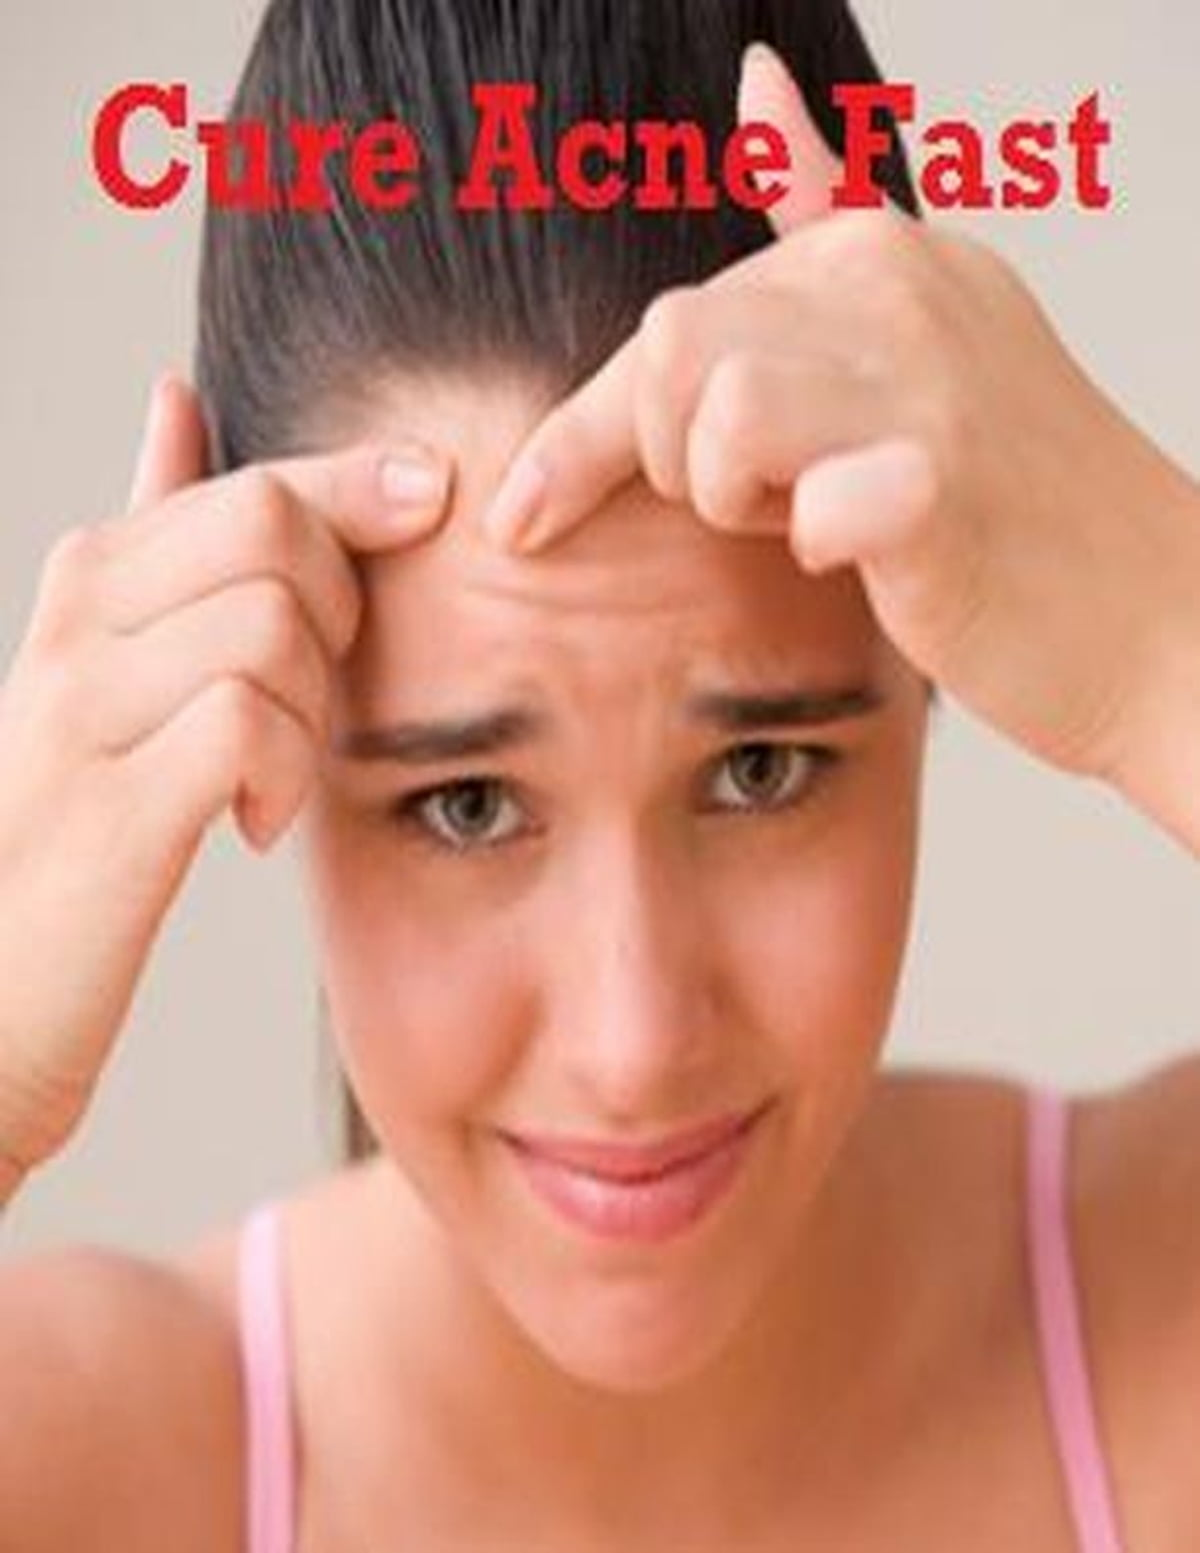 Cure Acne Fast Ebook By V T 1230000223677 Rakuten Kobo United States